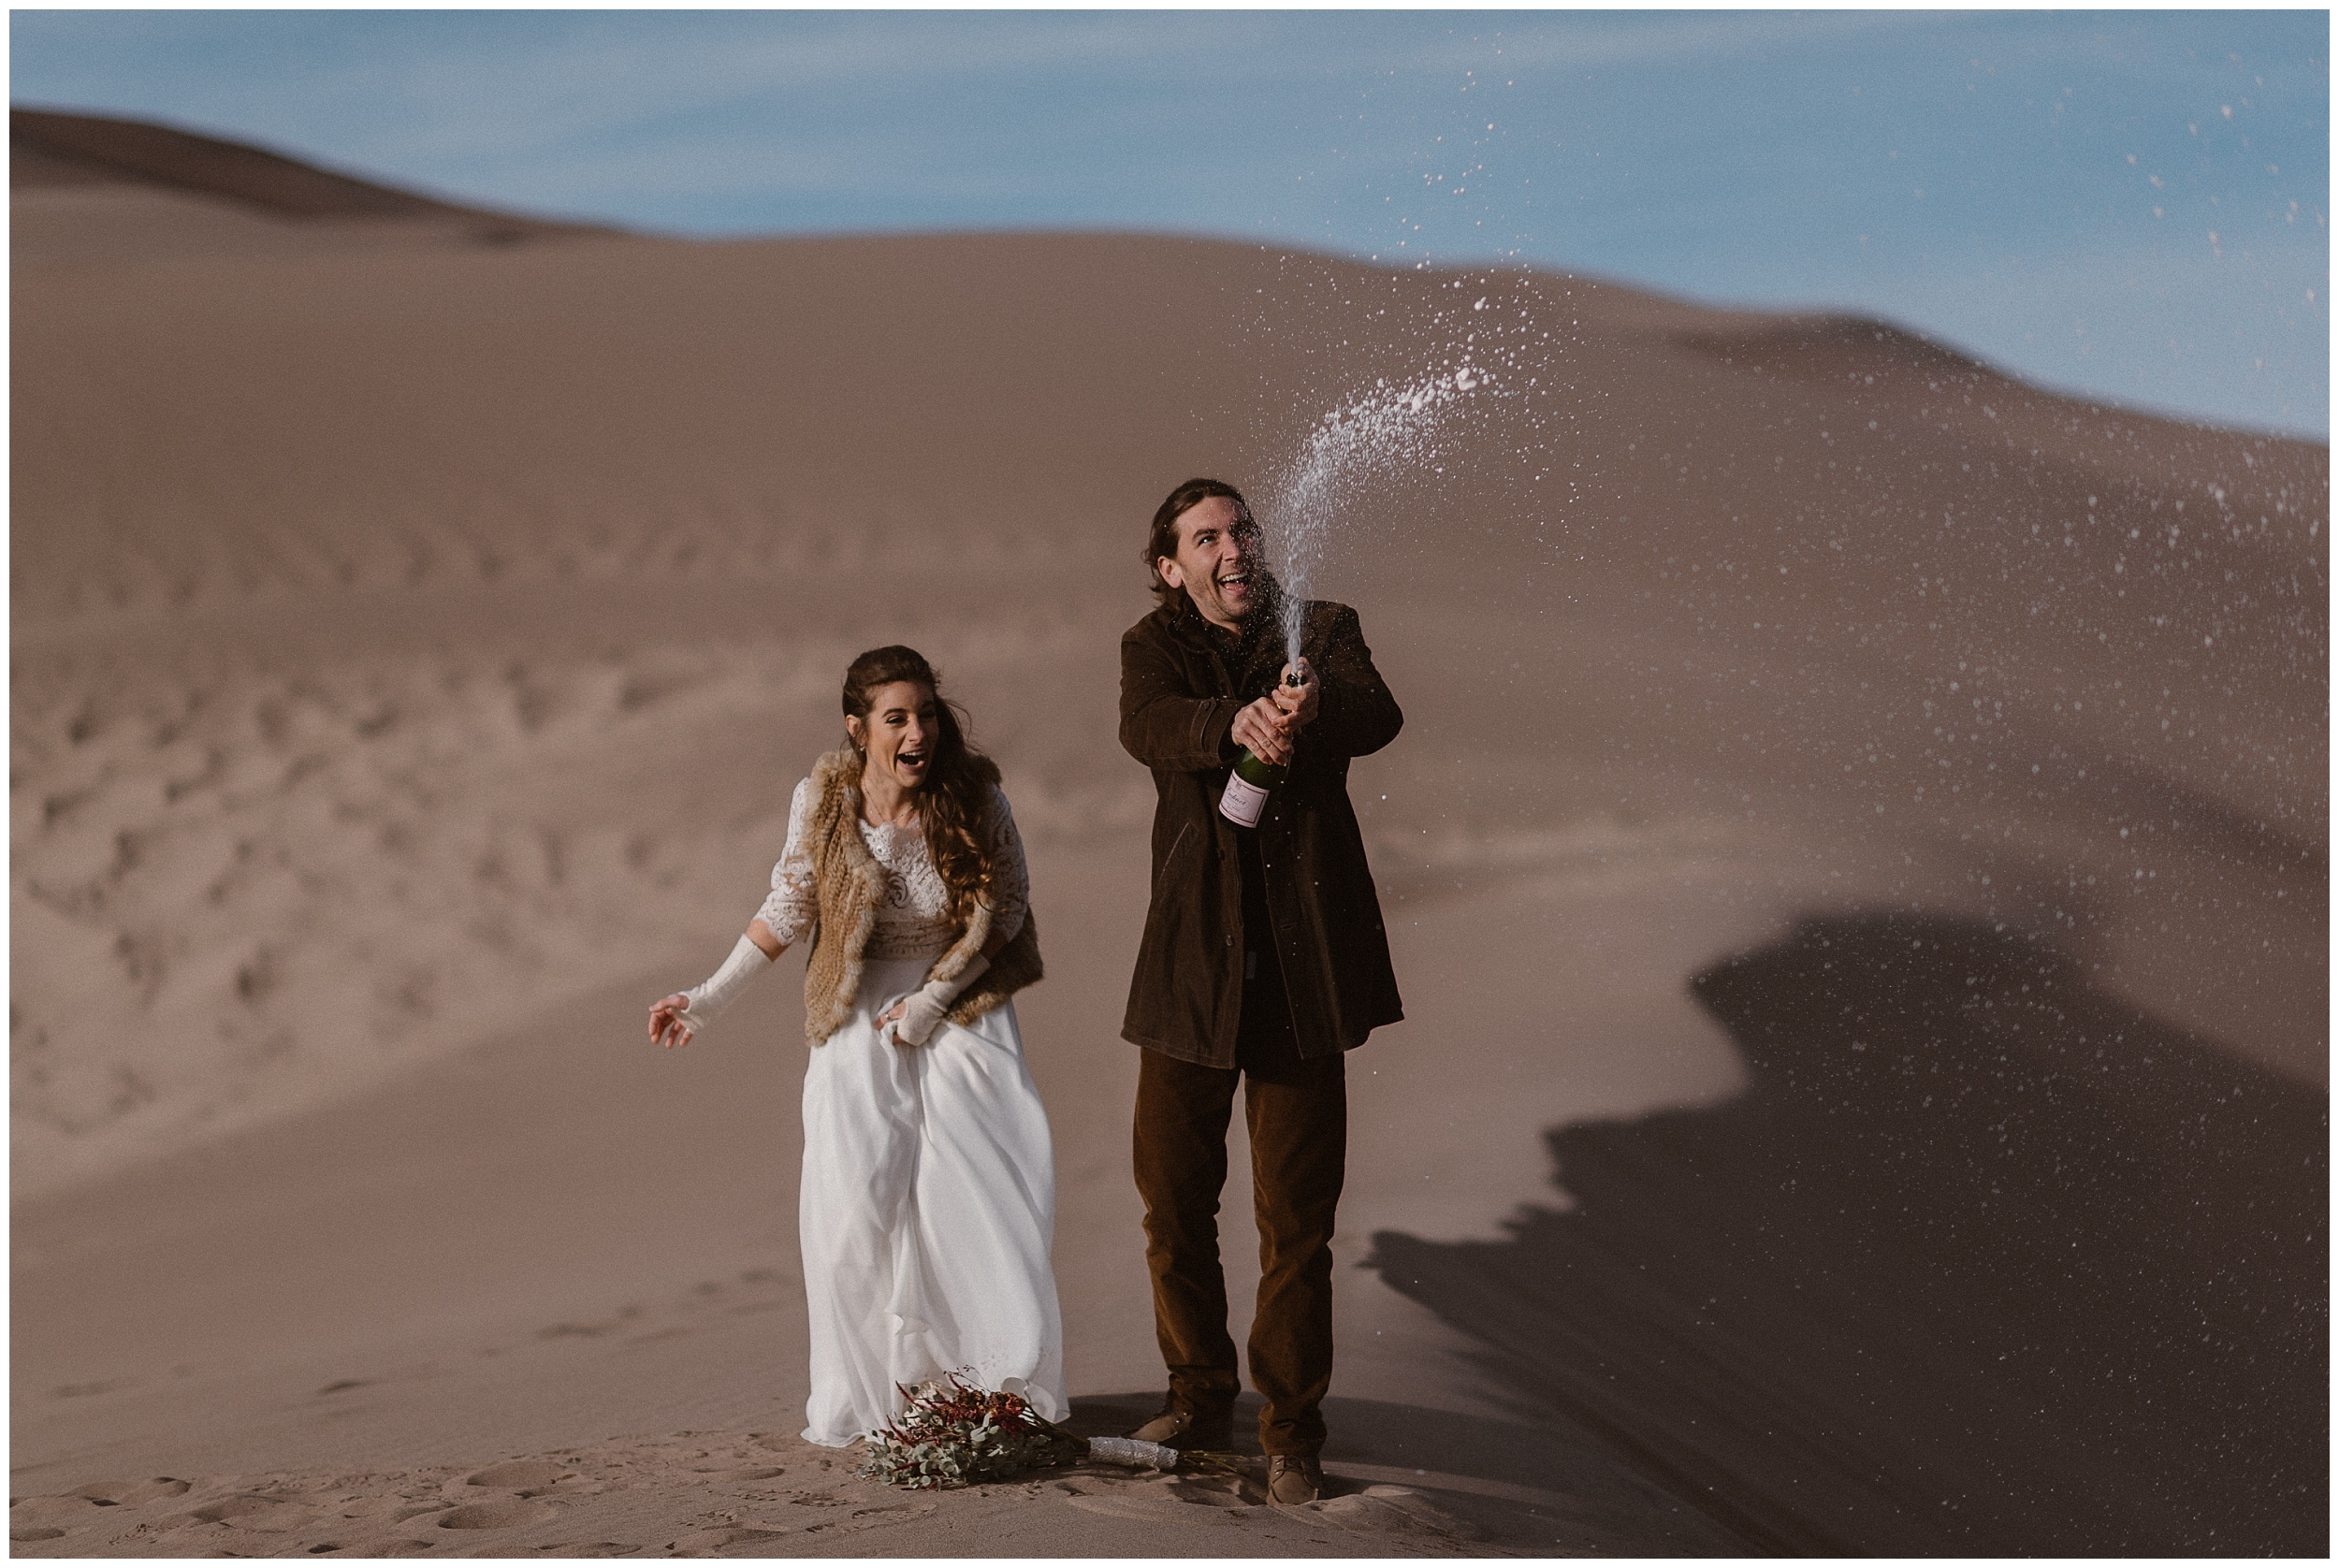 A bride and groom stand in the sand dunes as they pop celebratory champagne together. This unique eloping ceremony was a unique way for the bride and groom to elope in the location they want to. What's elope mean? Doing exactly what you want — just like this couple.